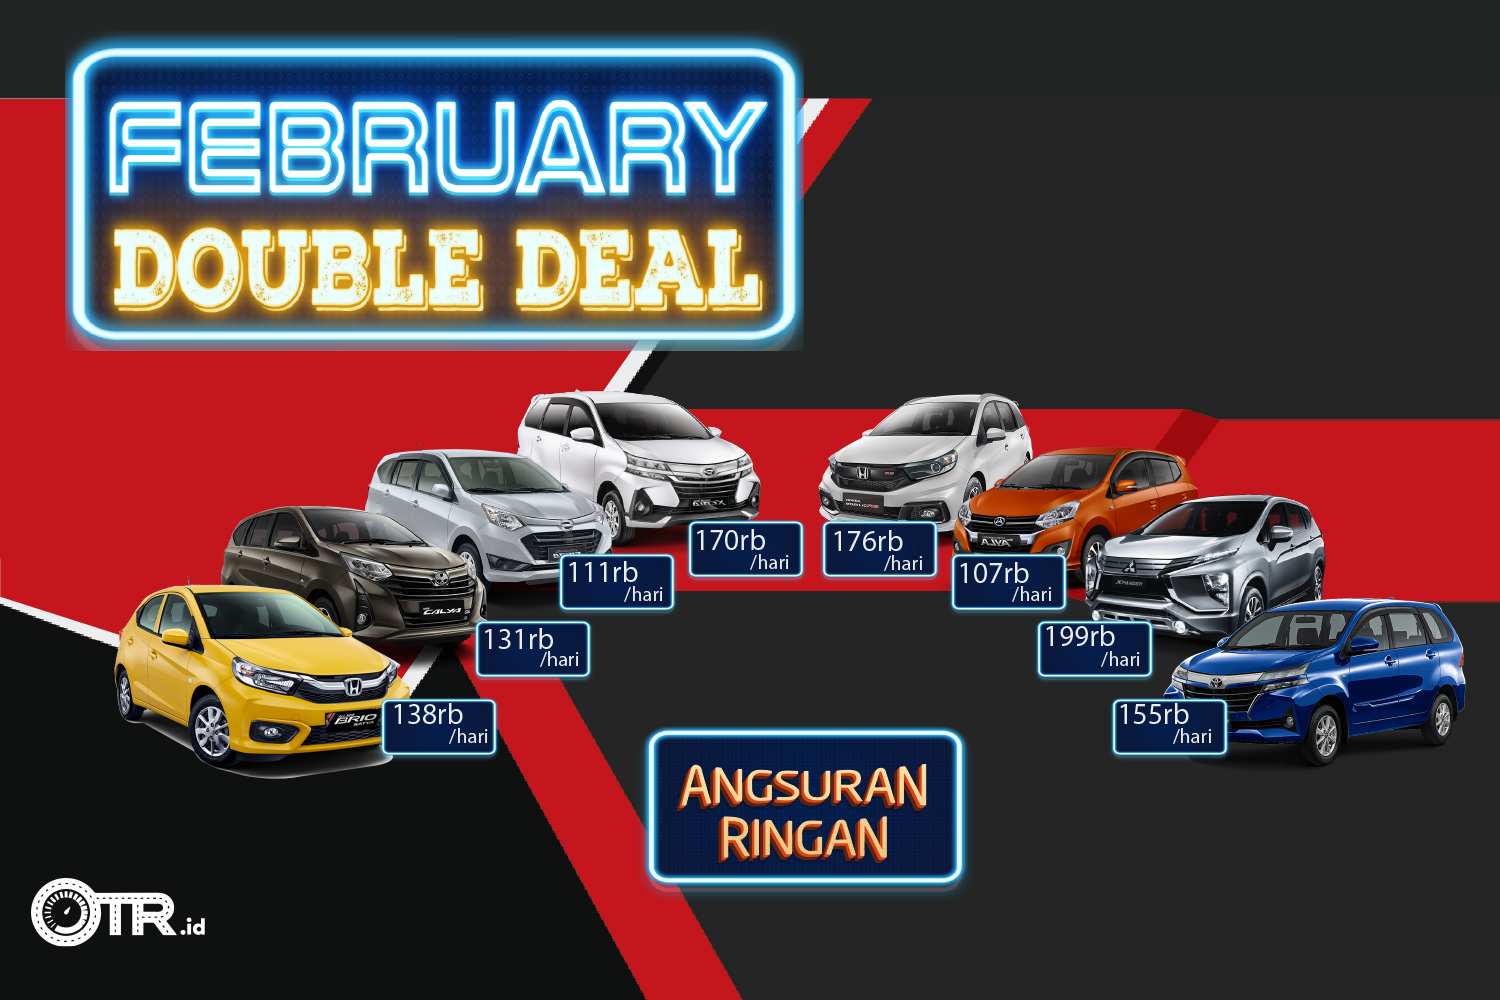 Promo February Cicilan Ringan Double Deal OTR.id